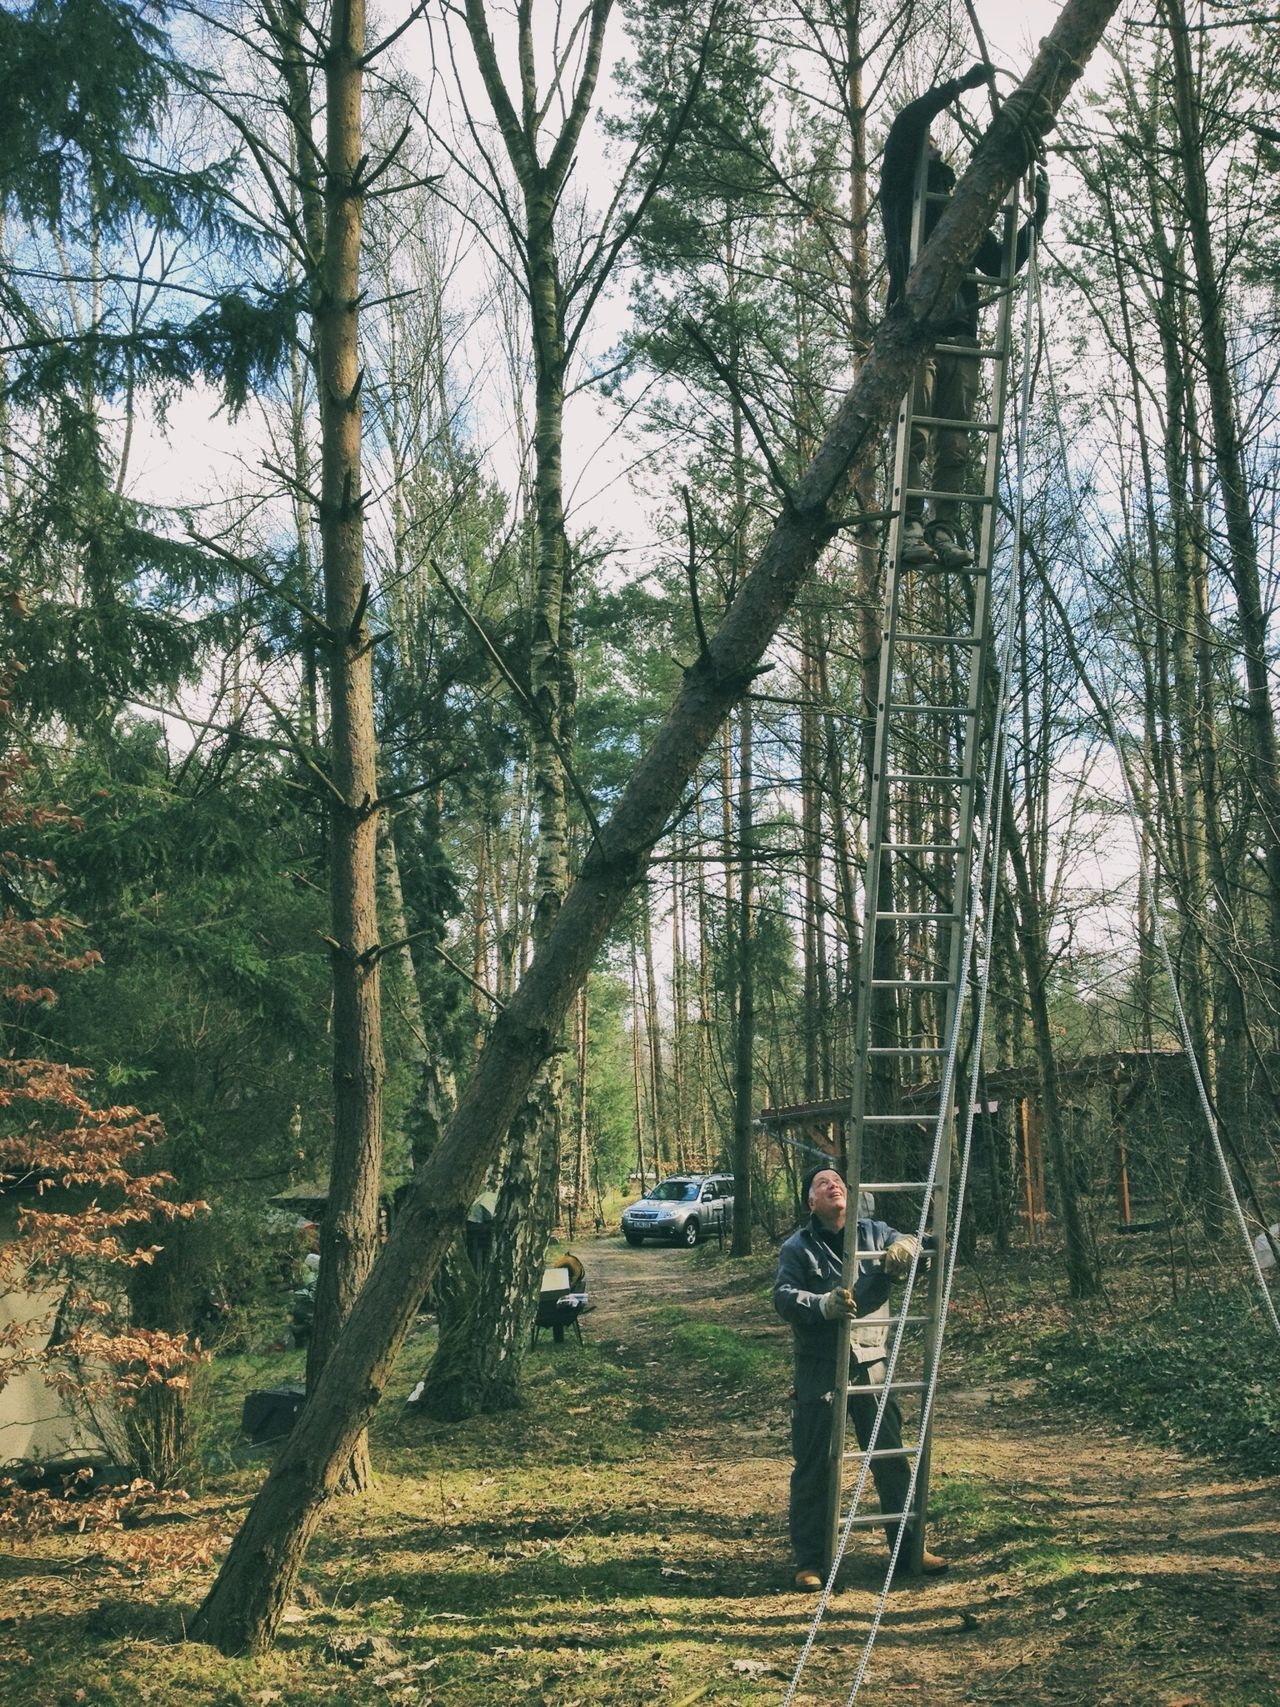 One Day Hanging Out Cut Trees Nature Nature_collection EyeEm Nature Lover Naturelovers Nature Photography Natural Wood Woods Wooden Landscape Landscape_Collection Landscape_photography Landscapes Leiter Light Up Your Life High Walk This Way Green Eye4photography  Urban Urbanphotography Working